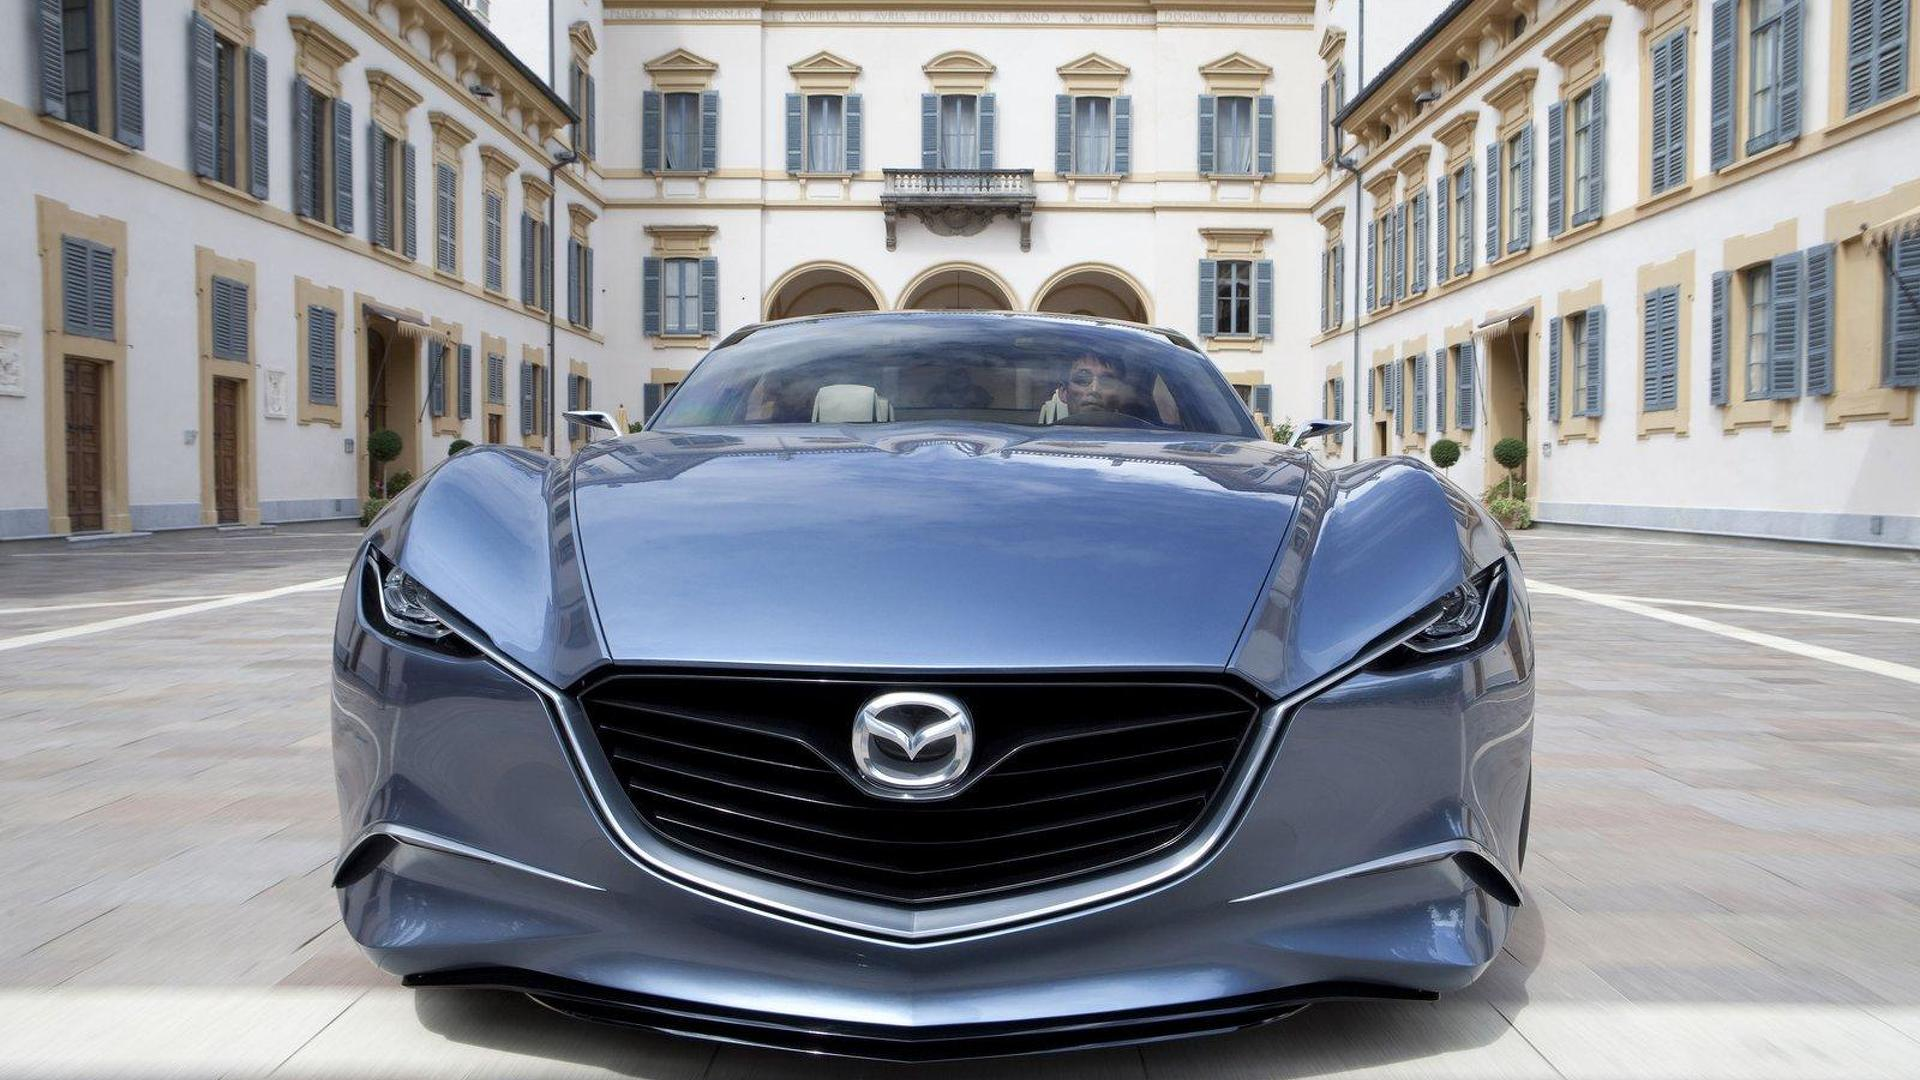 mazda says a new rotary engine is in the works Billet Rotary Engine